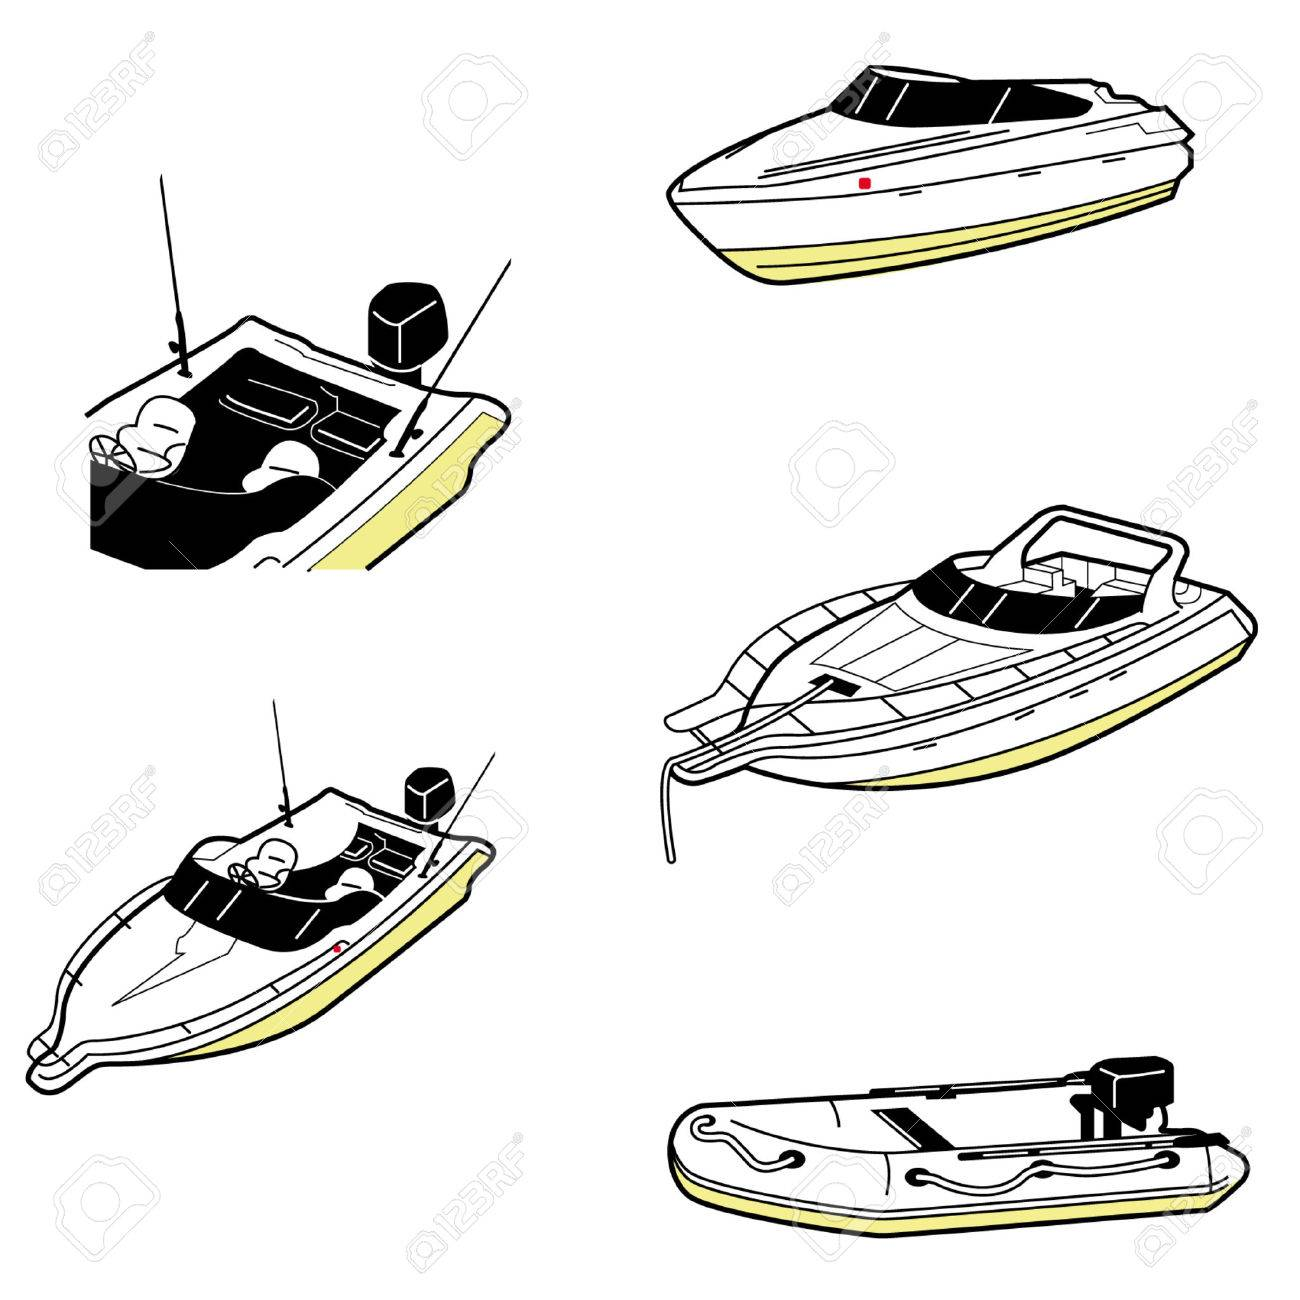 Differnet Types Of Boat Royalty Free Cliparts, Vectors, And Stock ...